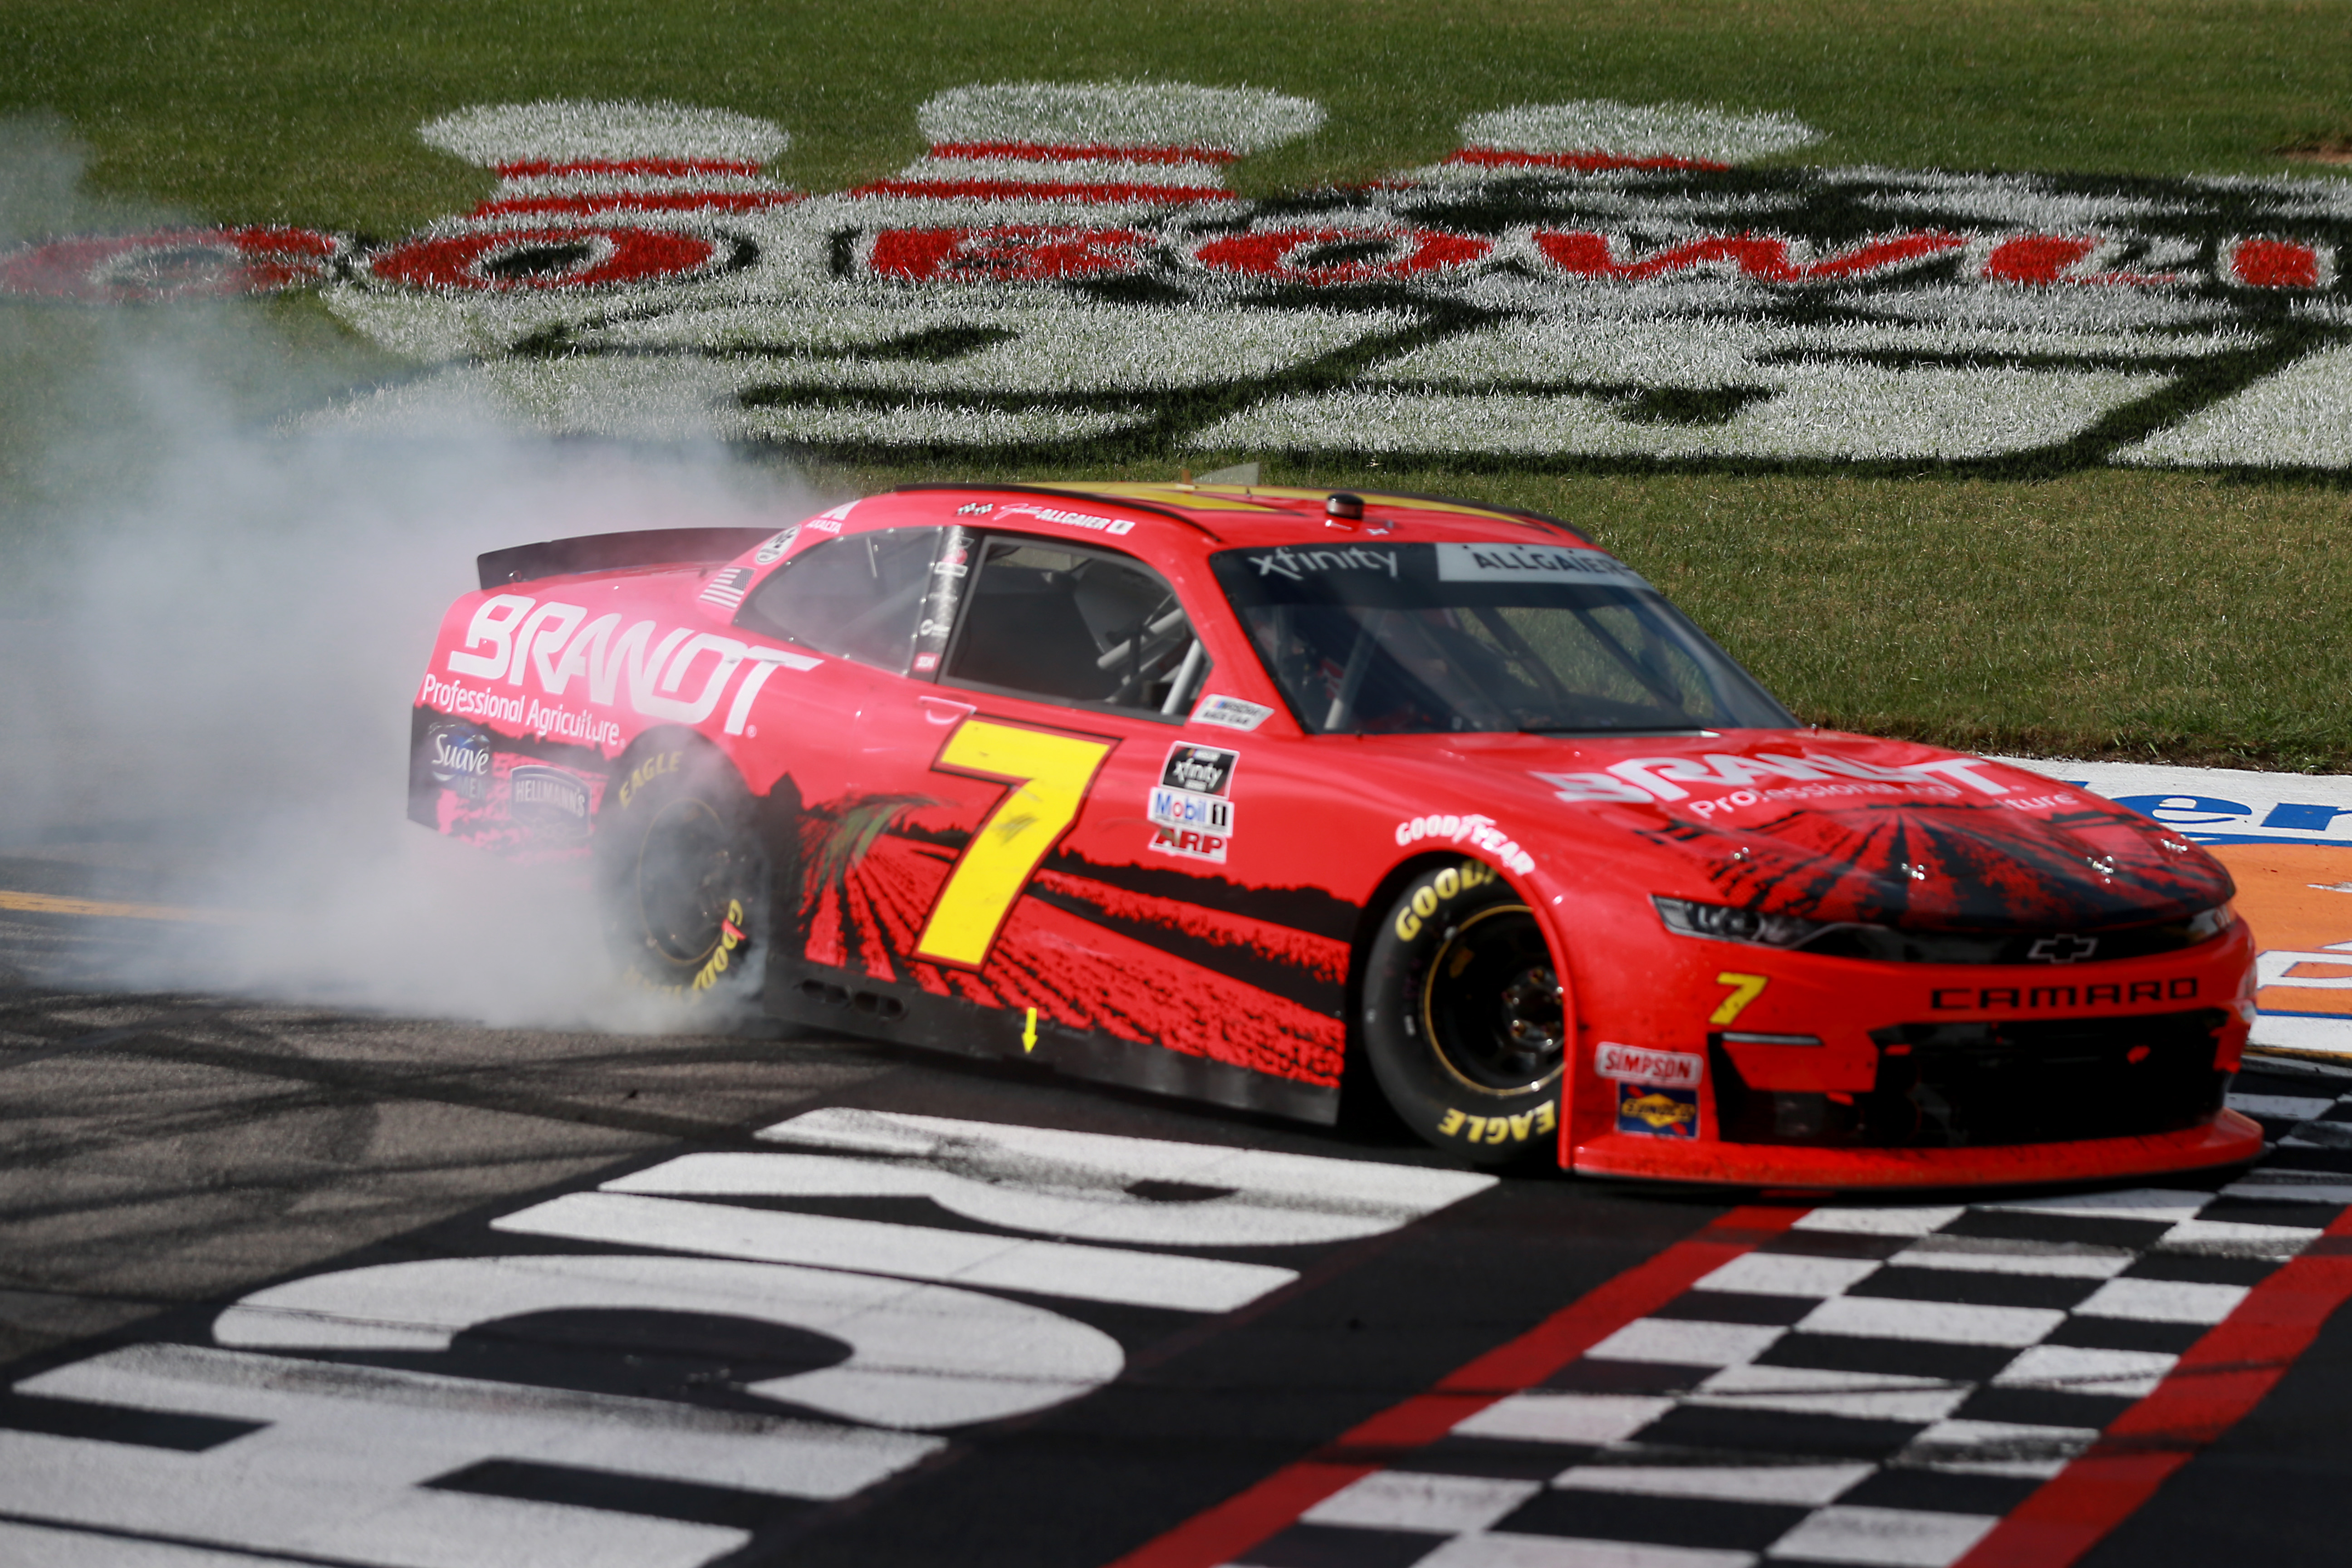 Justin Allgaier, driver of the #7 BRANDT Chevrolet, celebrates with a burnout after winning the NASCAR Xfinity Series Virginia is for Racing Lovers 250 at Richmond Raceway on September 12, 2020 in Richmond, Virginia.